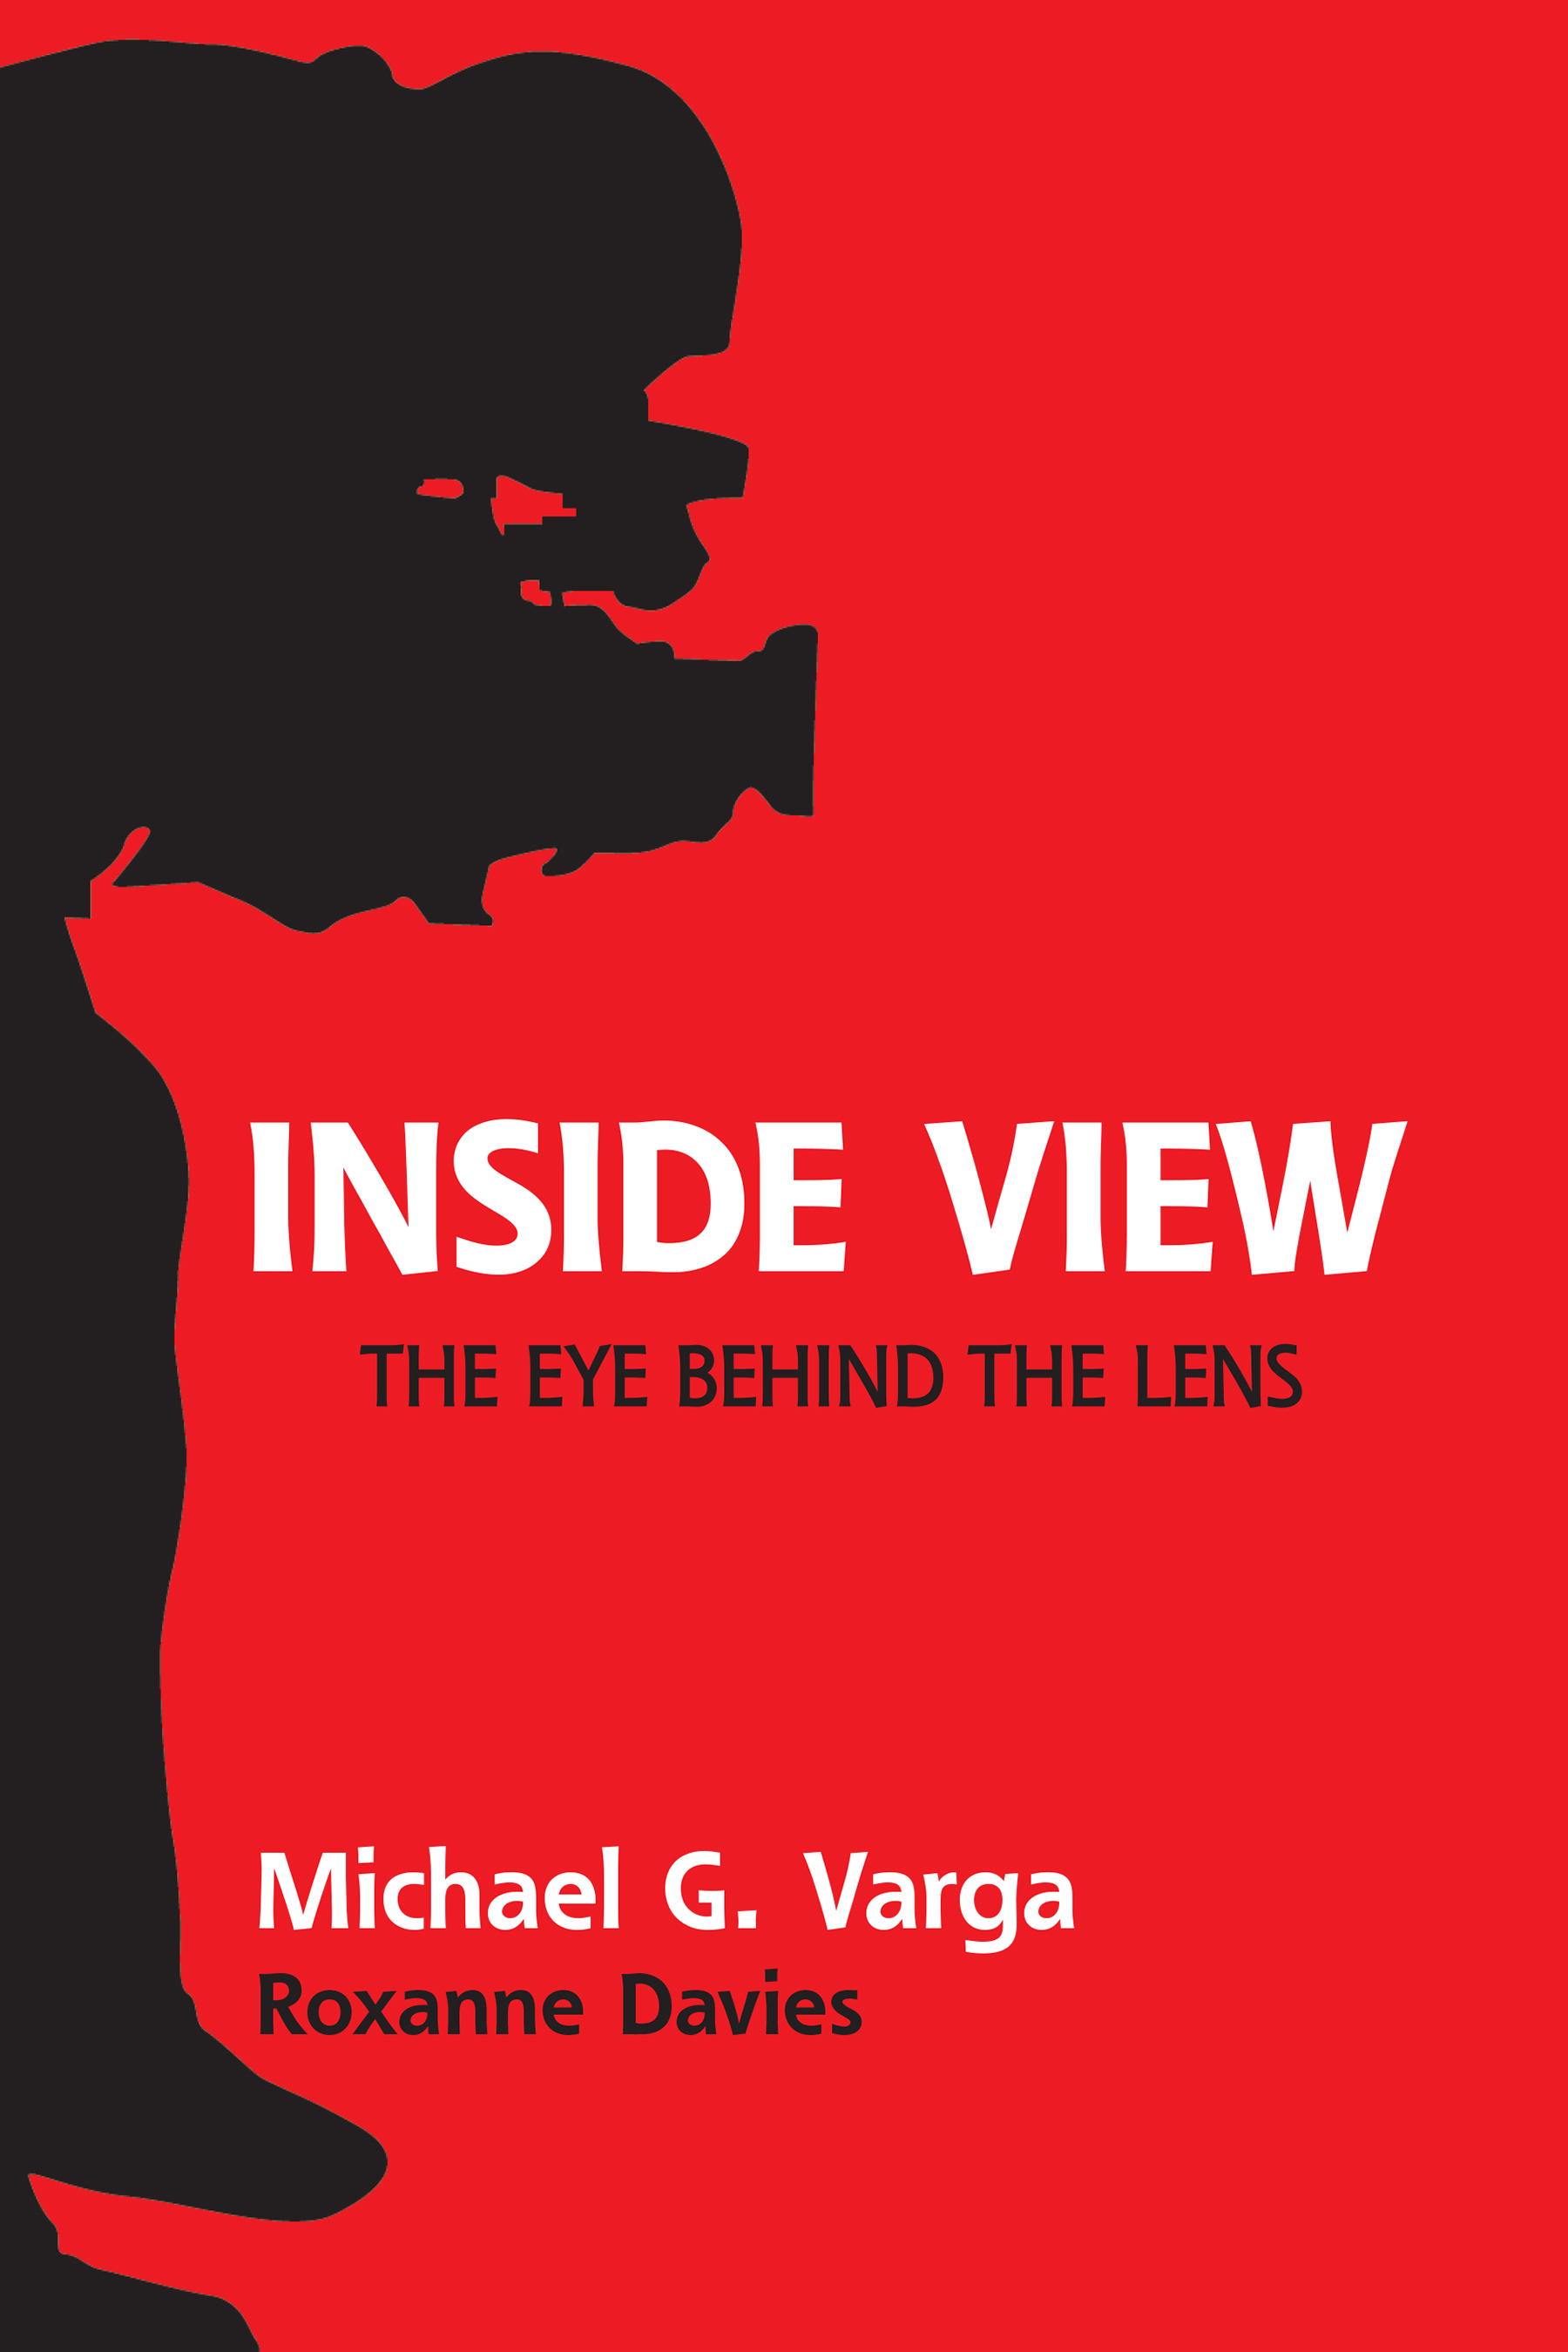 Inside View: The Eye Behind the Lens by Michael G. Varga with Roxanne Davies